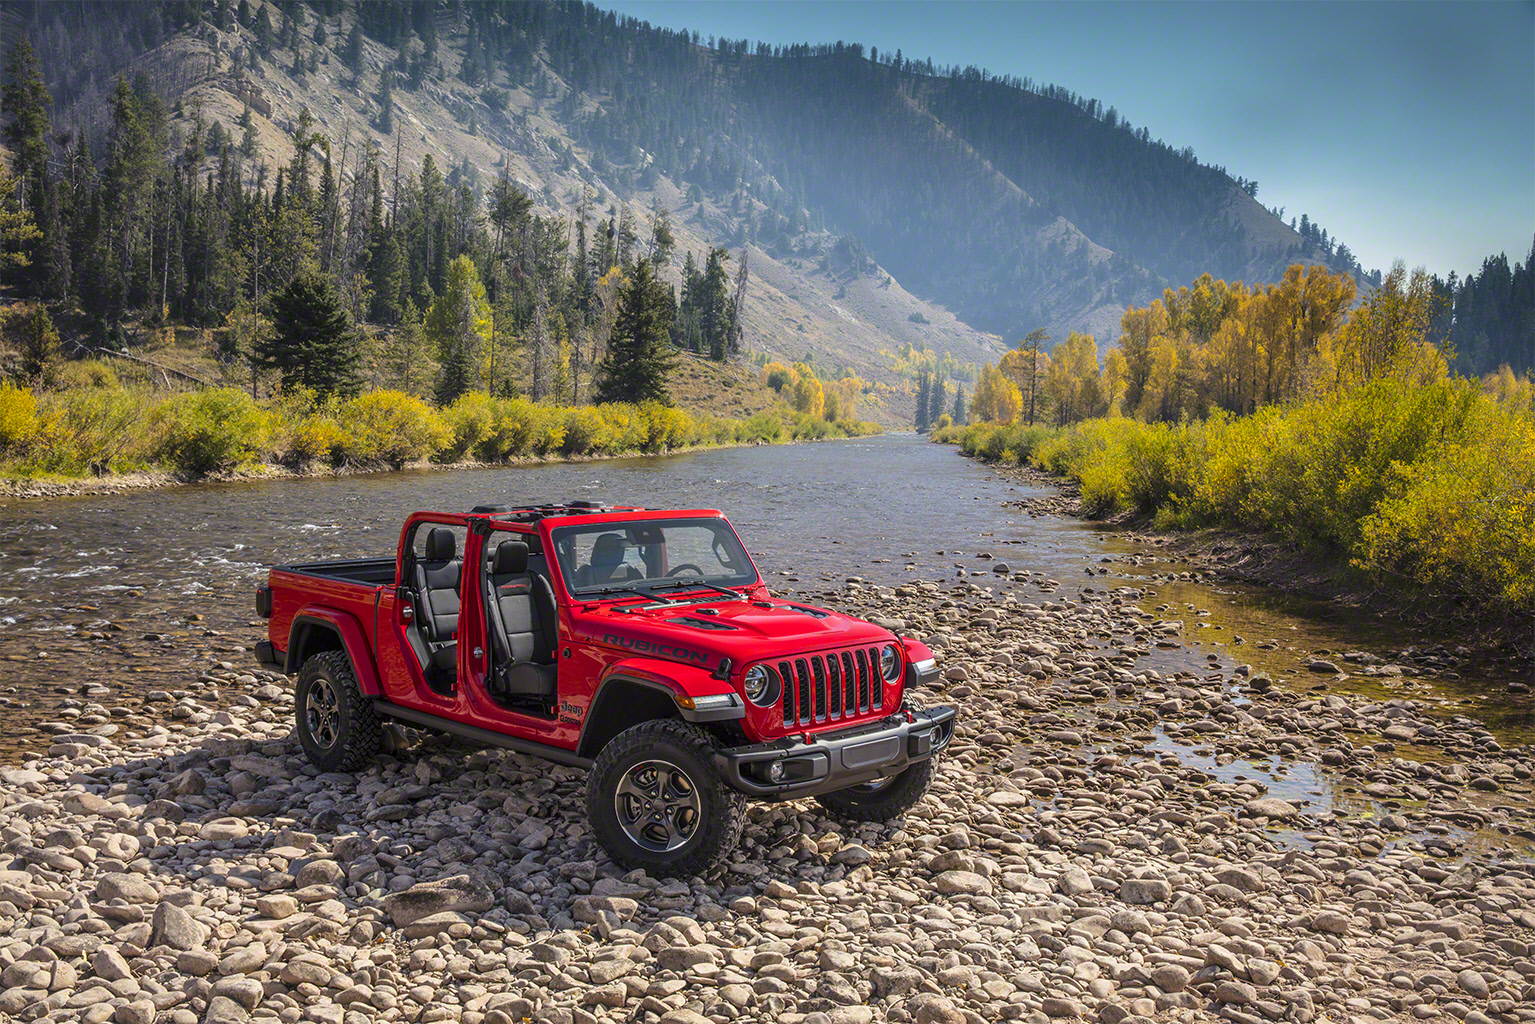 Falken tyres on new Jeep Gladiator